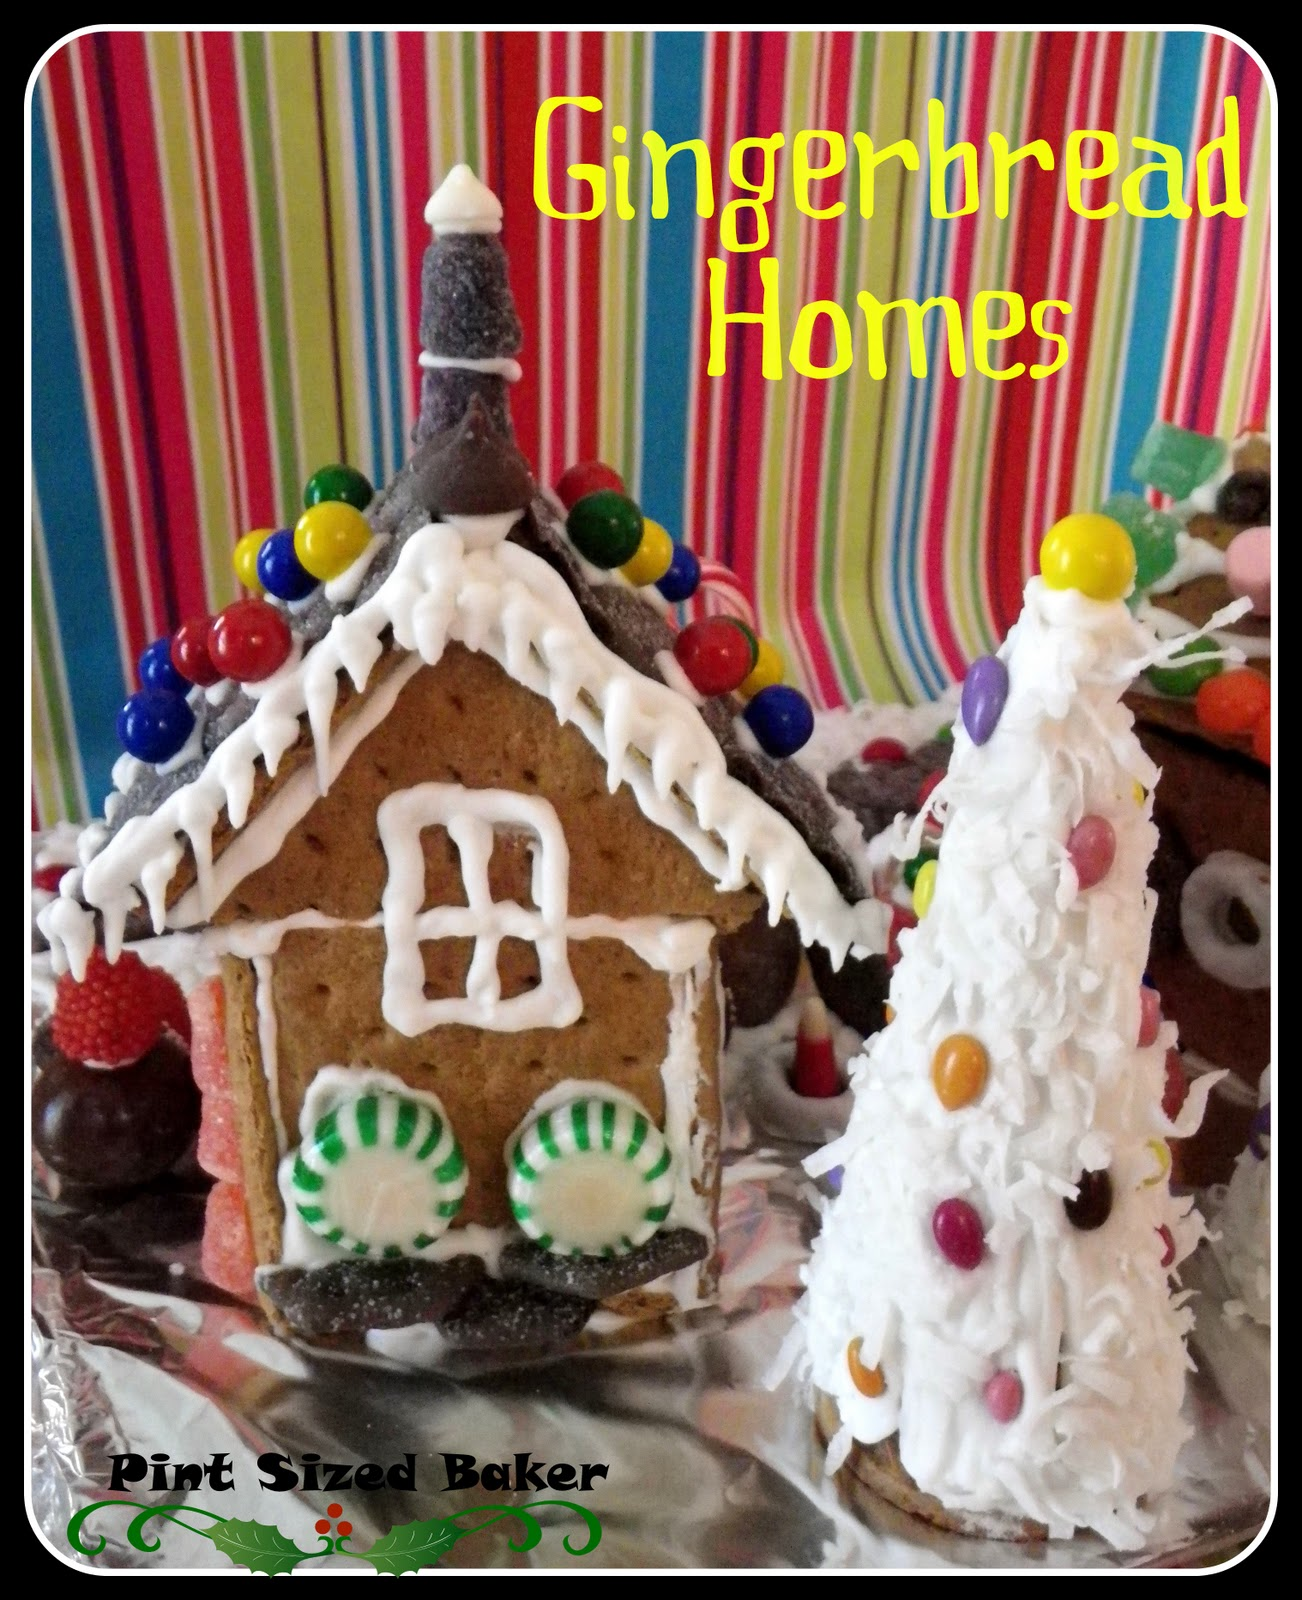 Gingerbread Graham er Houses - Pint Sized Baker on butterfly roof designs, church roof designs, gingerbread house chimneys, gingerbread house masonry, garden roof designs, birdhouse roof designs, snow roof designs, gingerbread house details, gingerbread house roofing,